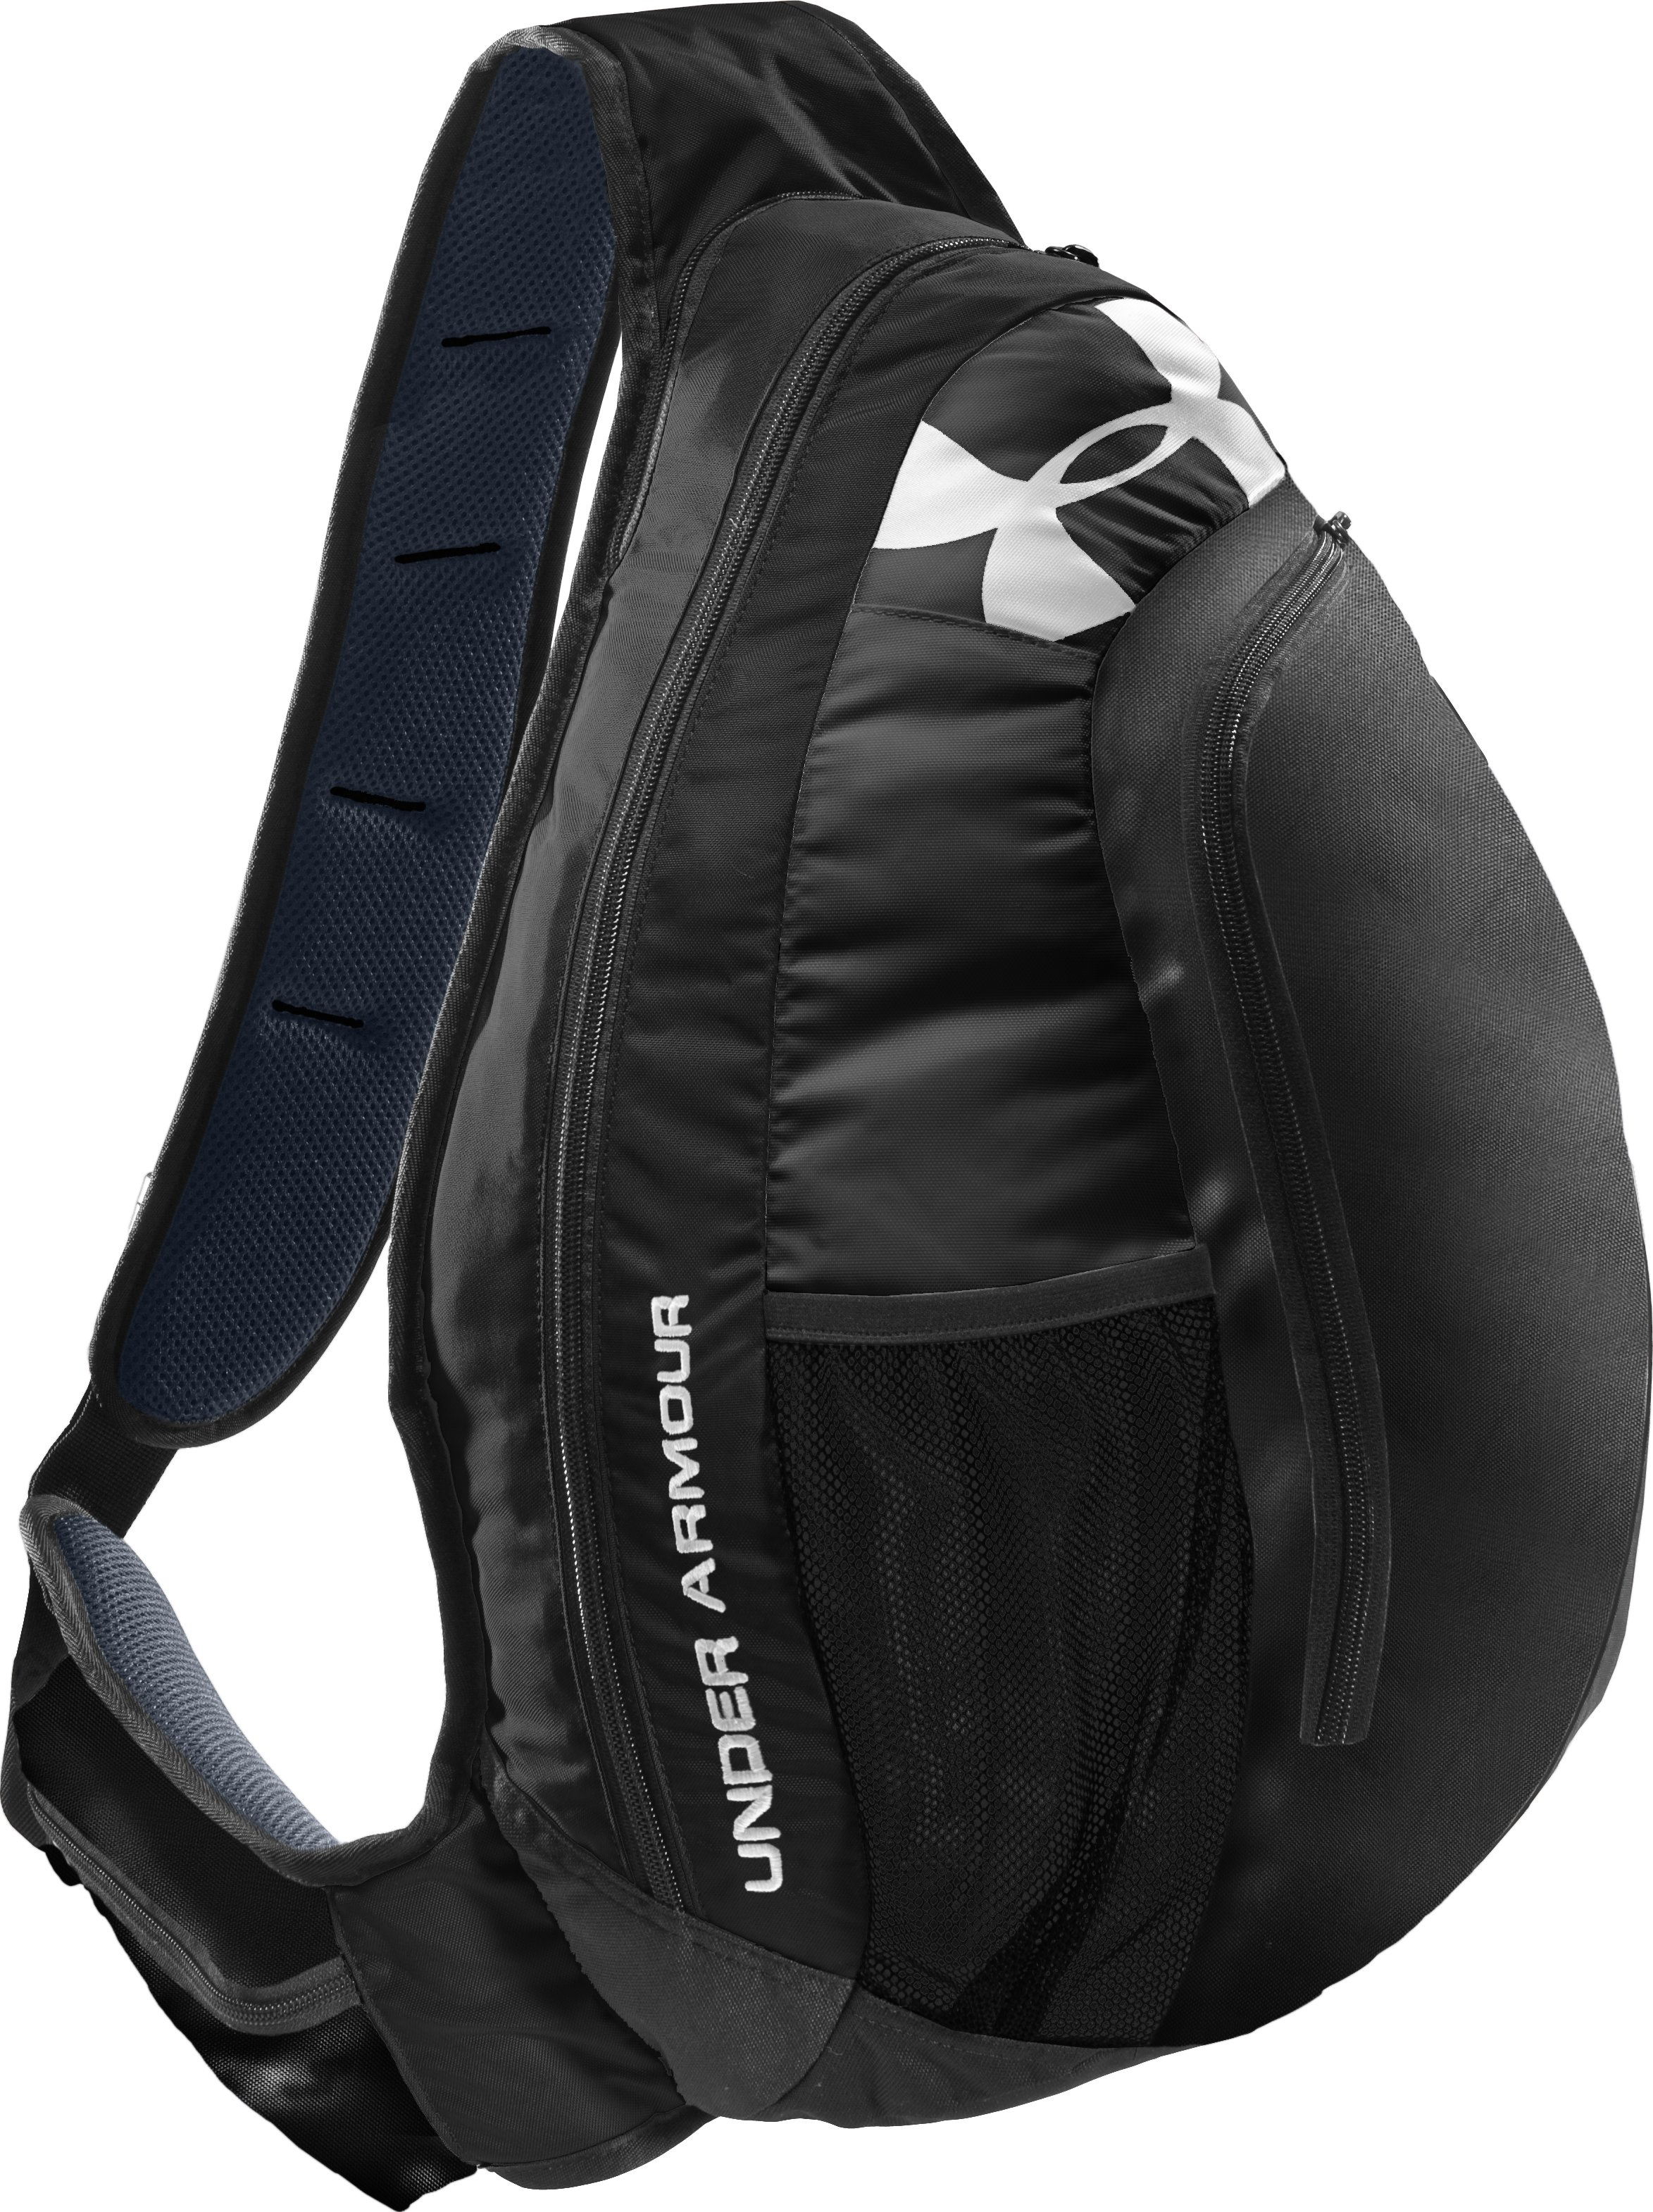 Khalon Sling Backpack, Black , undefined